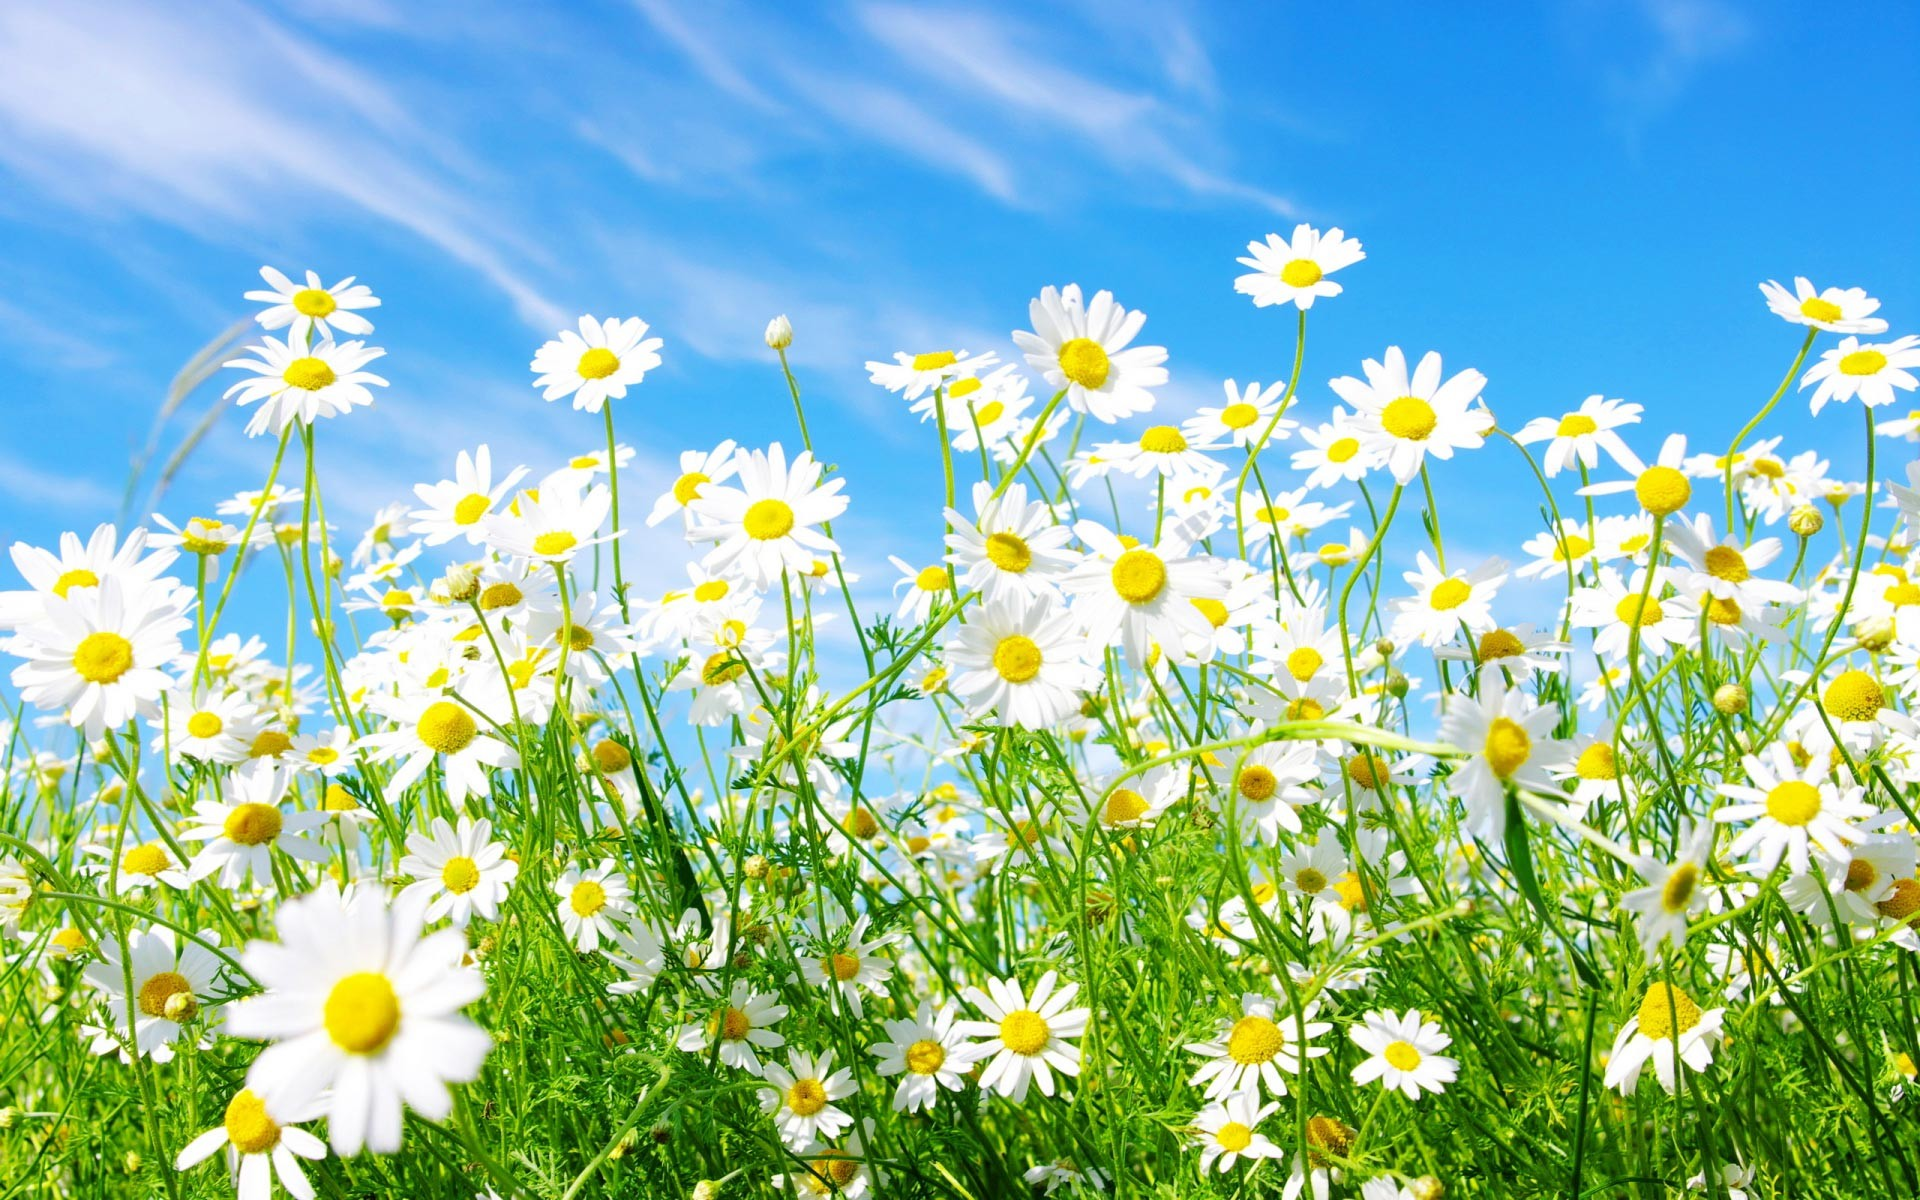 Spring Daisy Hd Widescreen Wallpapers.